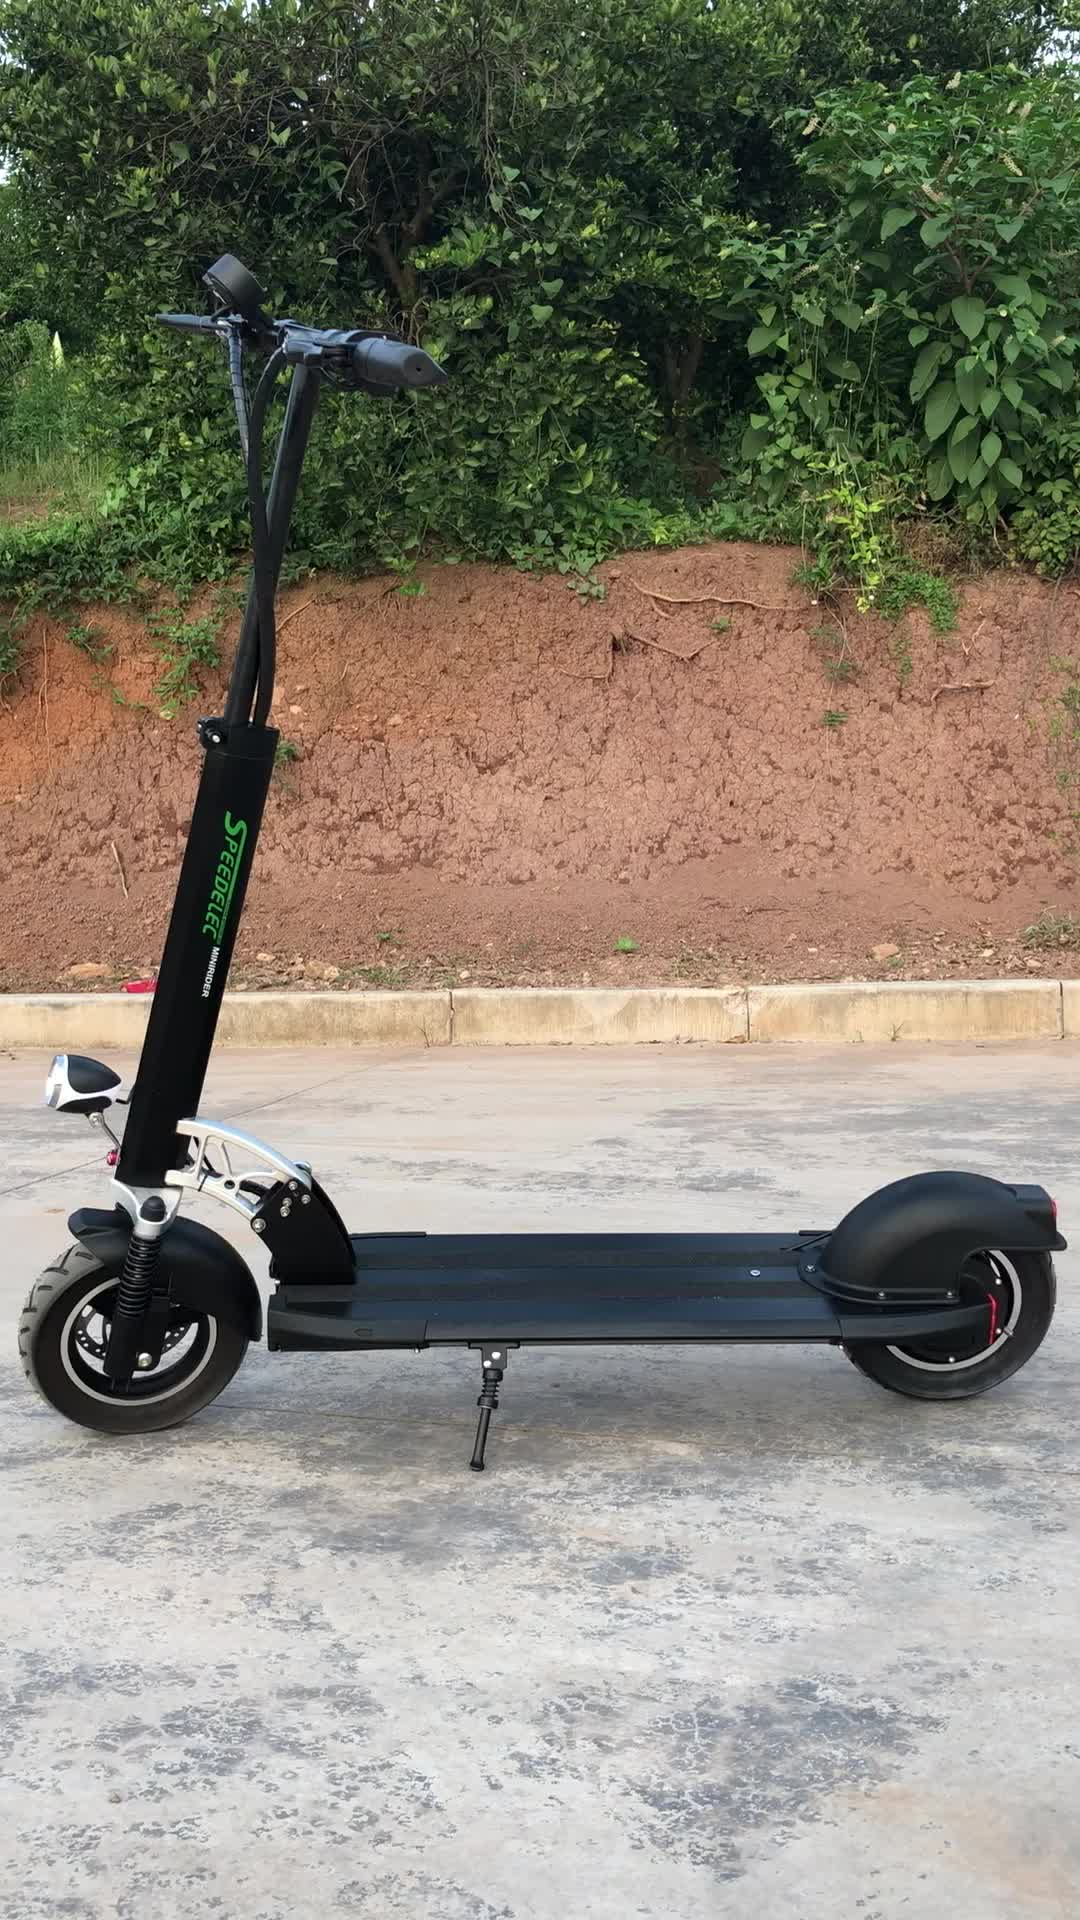 Speedway 3 21ah lithium battery 600w 52v brushless 2 wheel speedway electric scooter